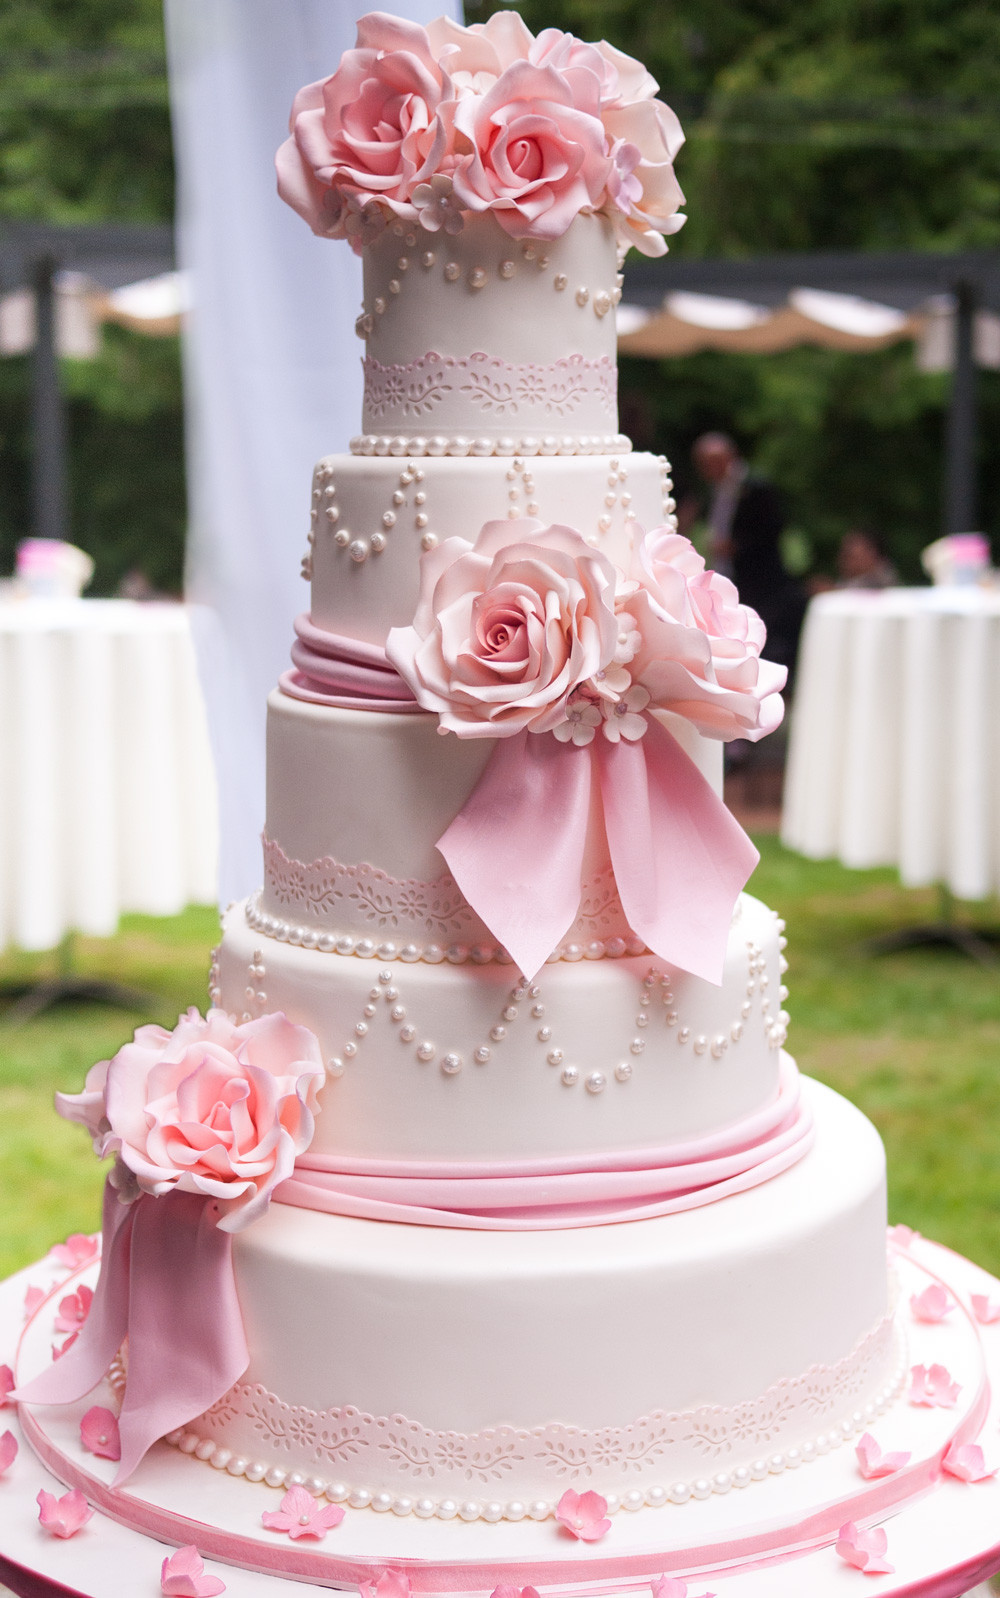 Beautiful Wedding Cakes Pictures  18 Wedding Cakes That Prove Love Is The Best Ingre nt